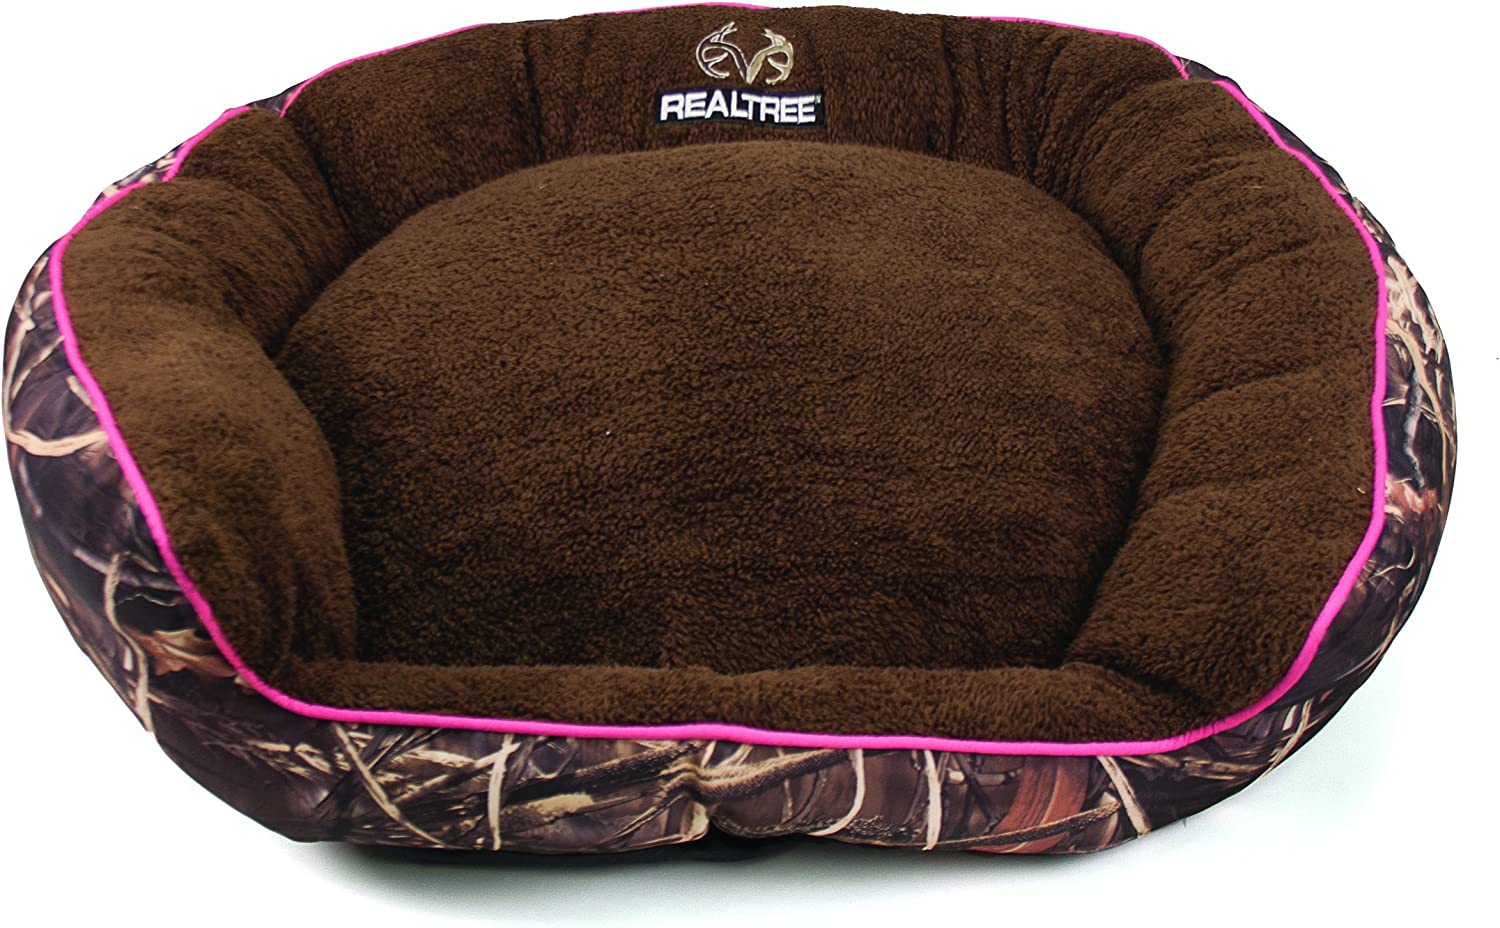 Realtree Large Camo Bolstered Pet Bed